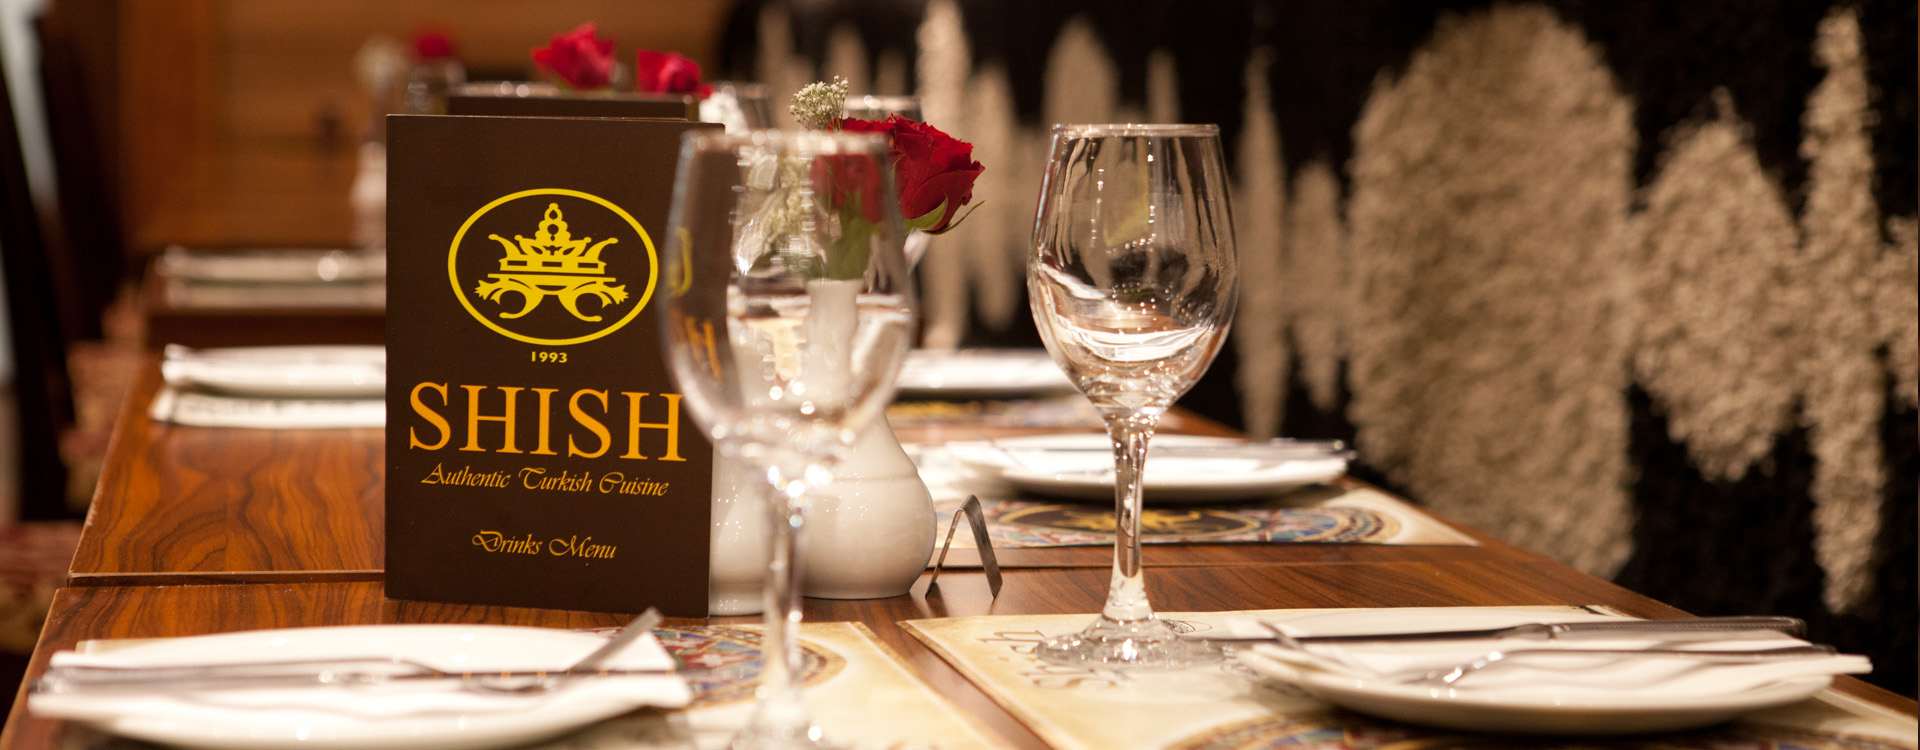 Shish Turkish Restaurant